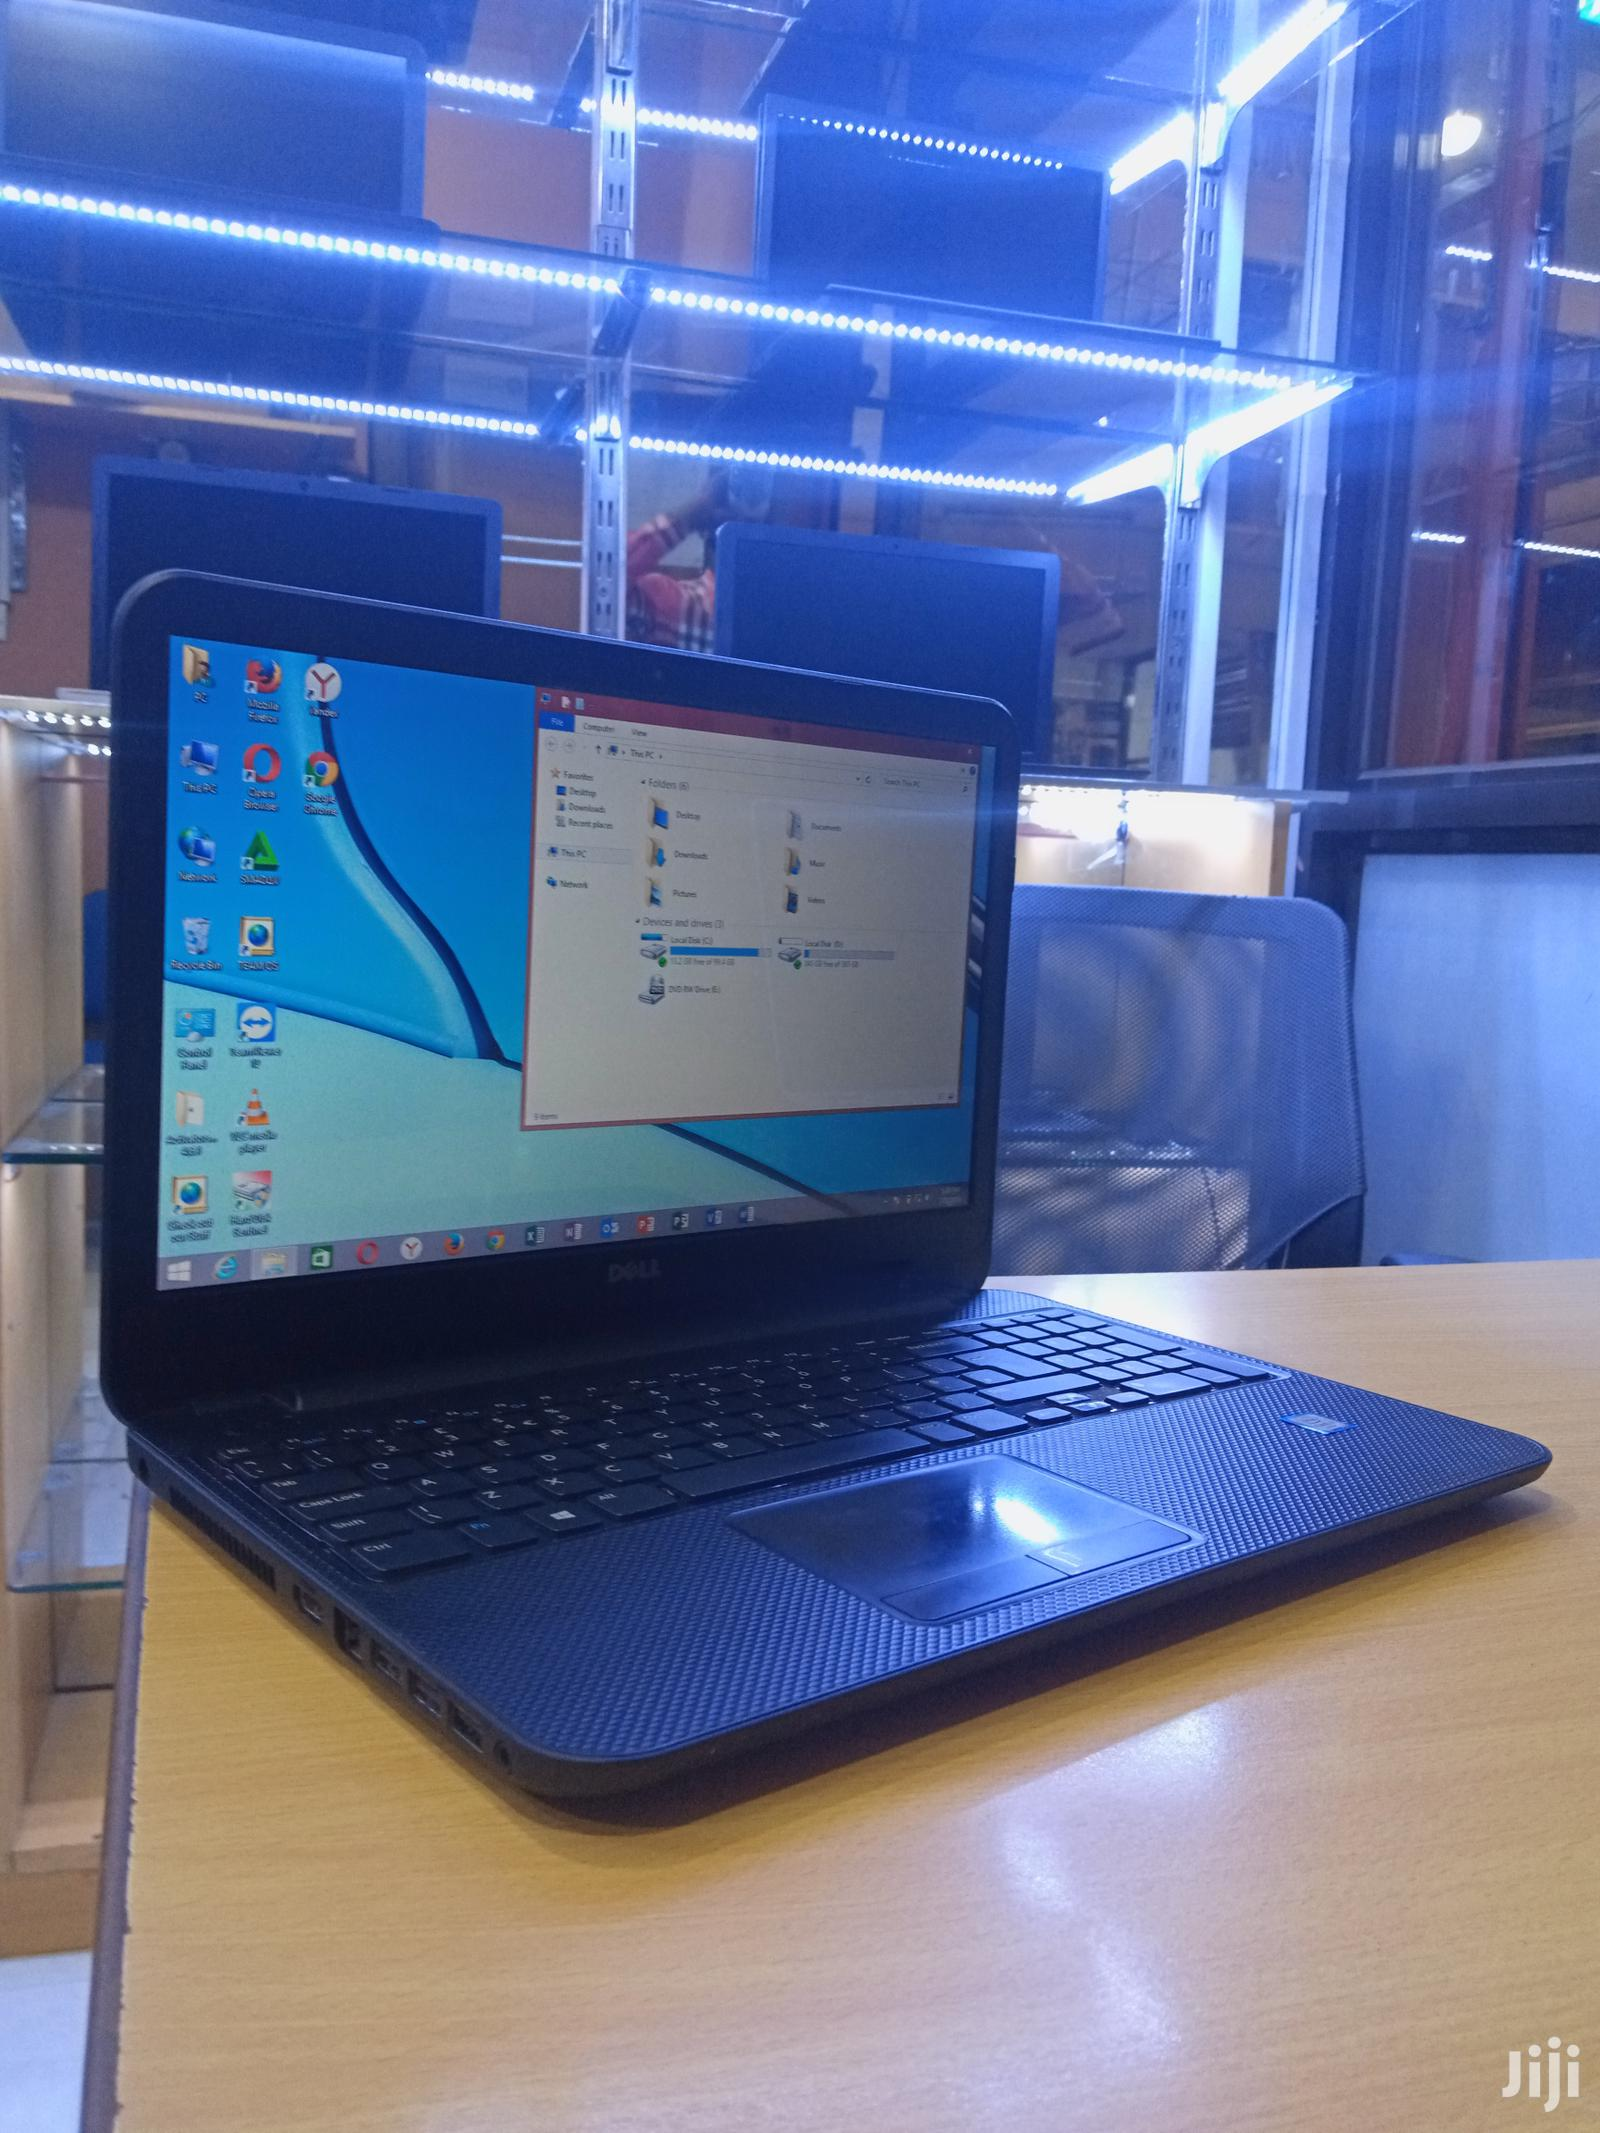 Dell Inspiron 15 15.6 Inches 500 Gb Hdd Core I5 4 Gb Ram | Laptops & Computers for sale in Kampala, Central Region, Uganda